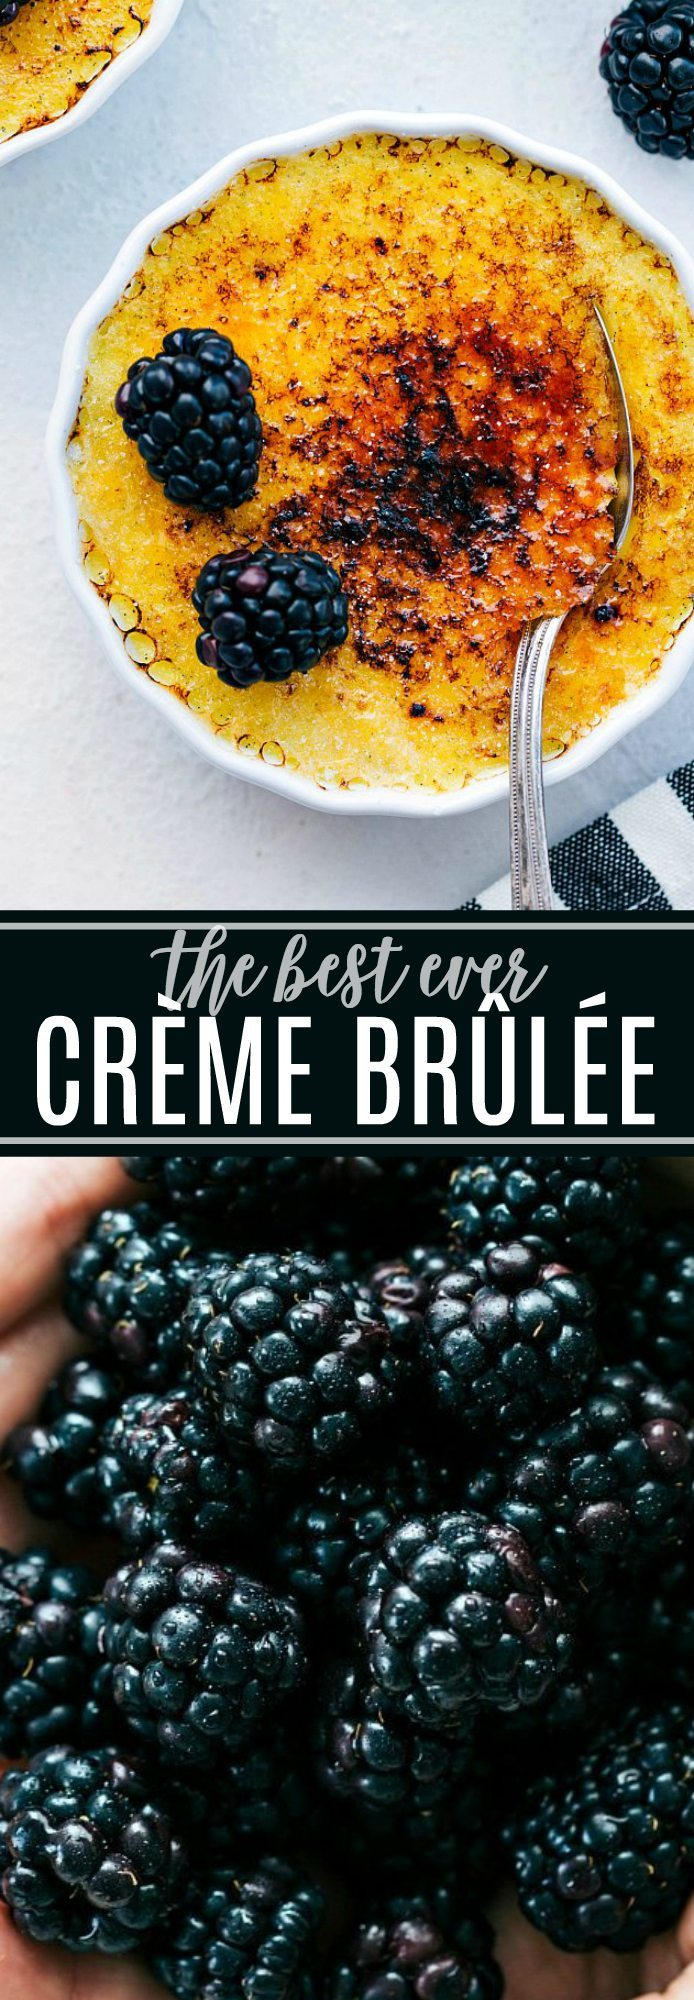 The ultimate BEST EVER easy creme brulee! So easy to make at home and makes for a gorgeous fancy dessert! Plus NO special kitchen torch required (oven instructions). Video tutorial included. via chelseasmessyapron.com #cremebrulee #creme #brulee #dessert #easy #video #tutorial #custard #dessert #helpful #tips #valentines #day #treat #desserts